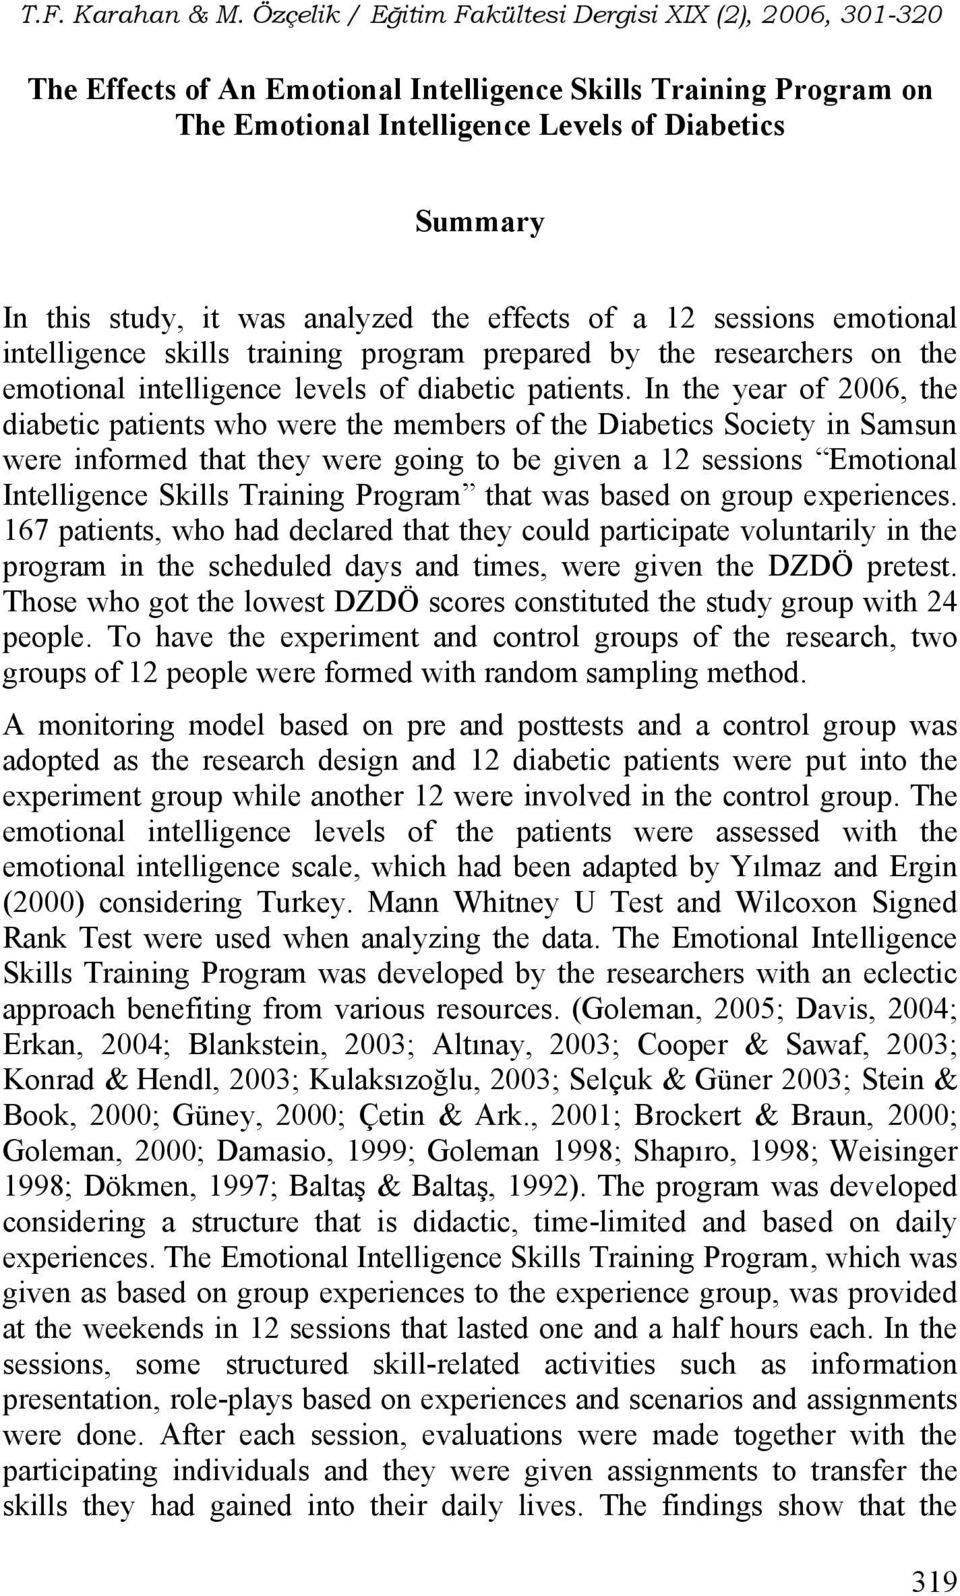 In the year of 2006, the diabetic patients who were the members of the Diabetics Society in Samsun were informed that they were going to be given a 12 sessions Emotional Intelligence Skills Training